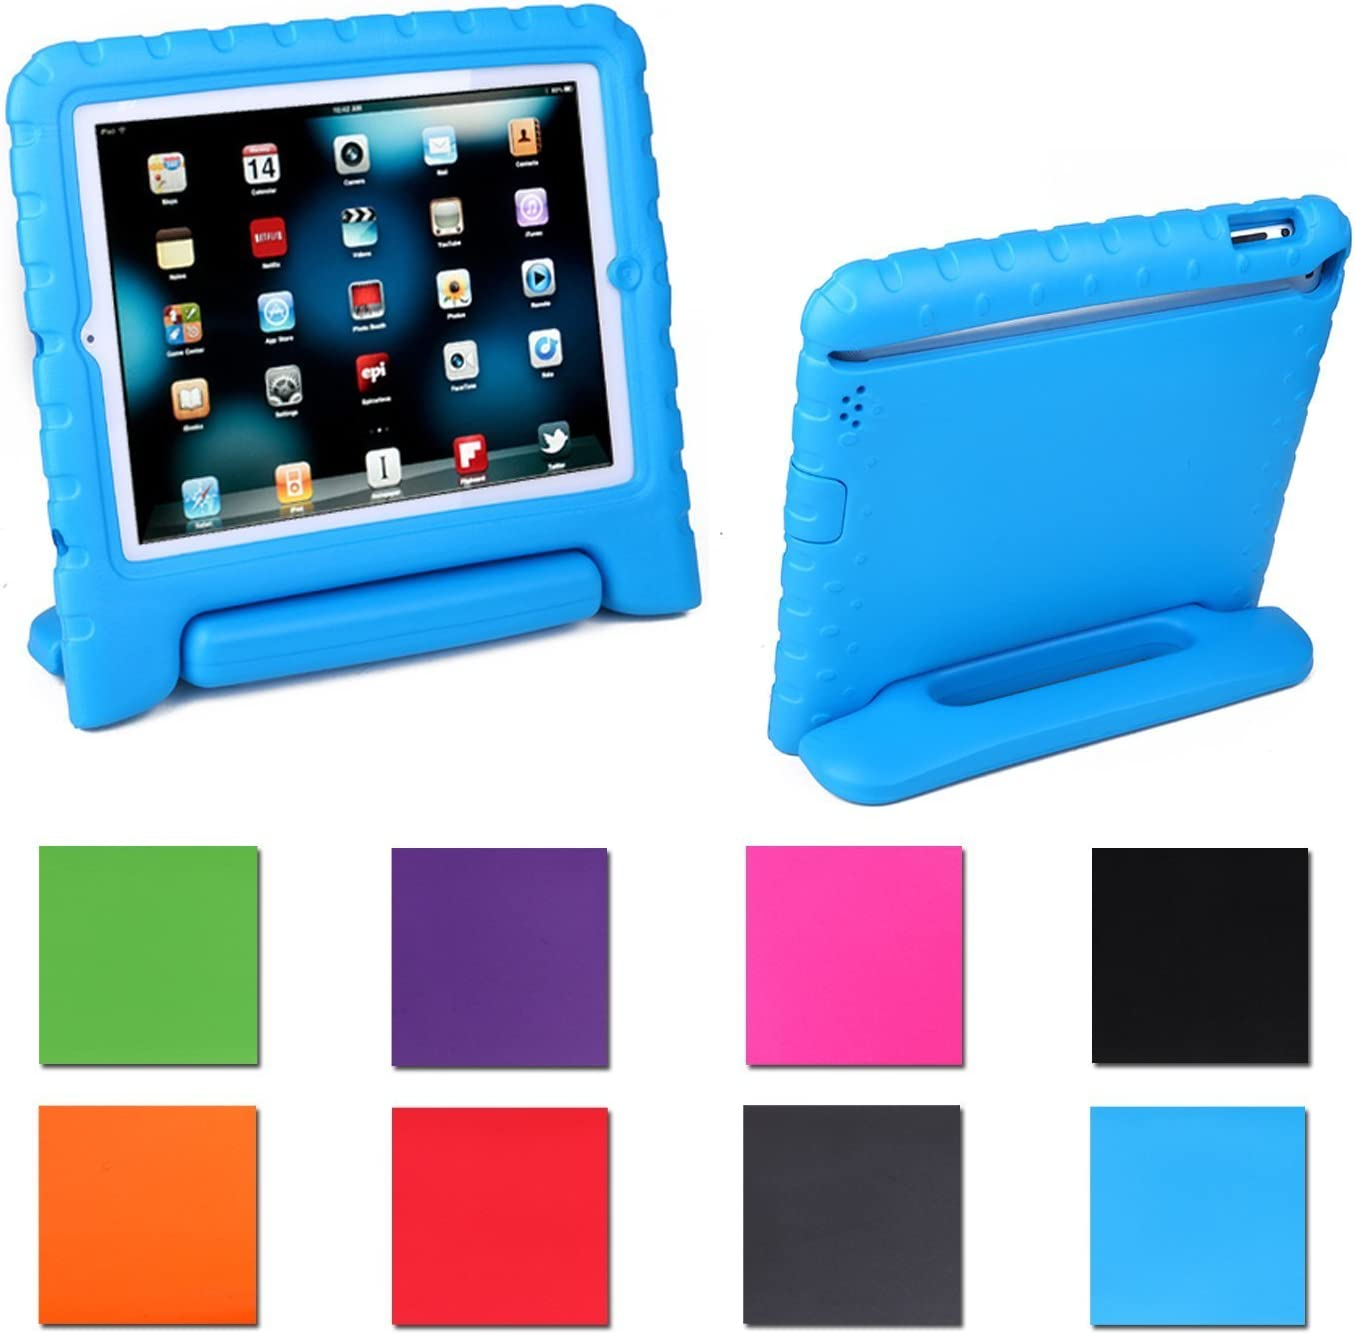 AGRIGLE iPad Mini Case, [Kids Series] Shock Proof Convertible Handle Light Weight Super Protective Stand Cover Case for Apple iPad Mini/Mini 2/Mini 3 (Blue)